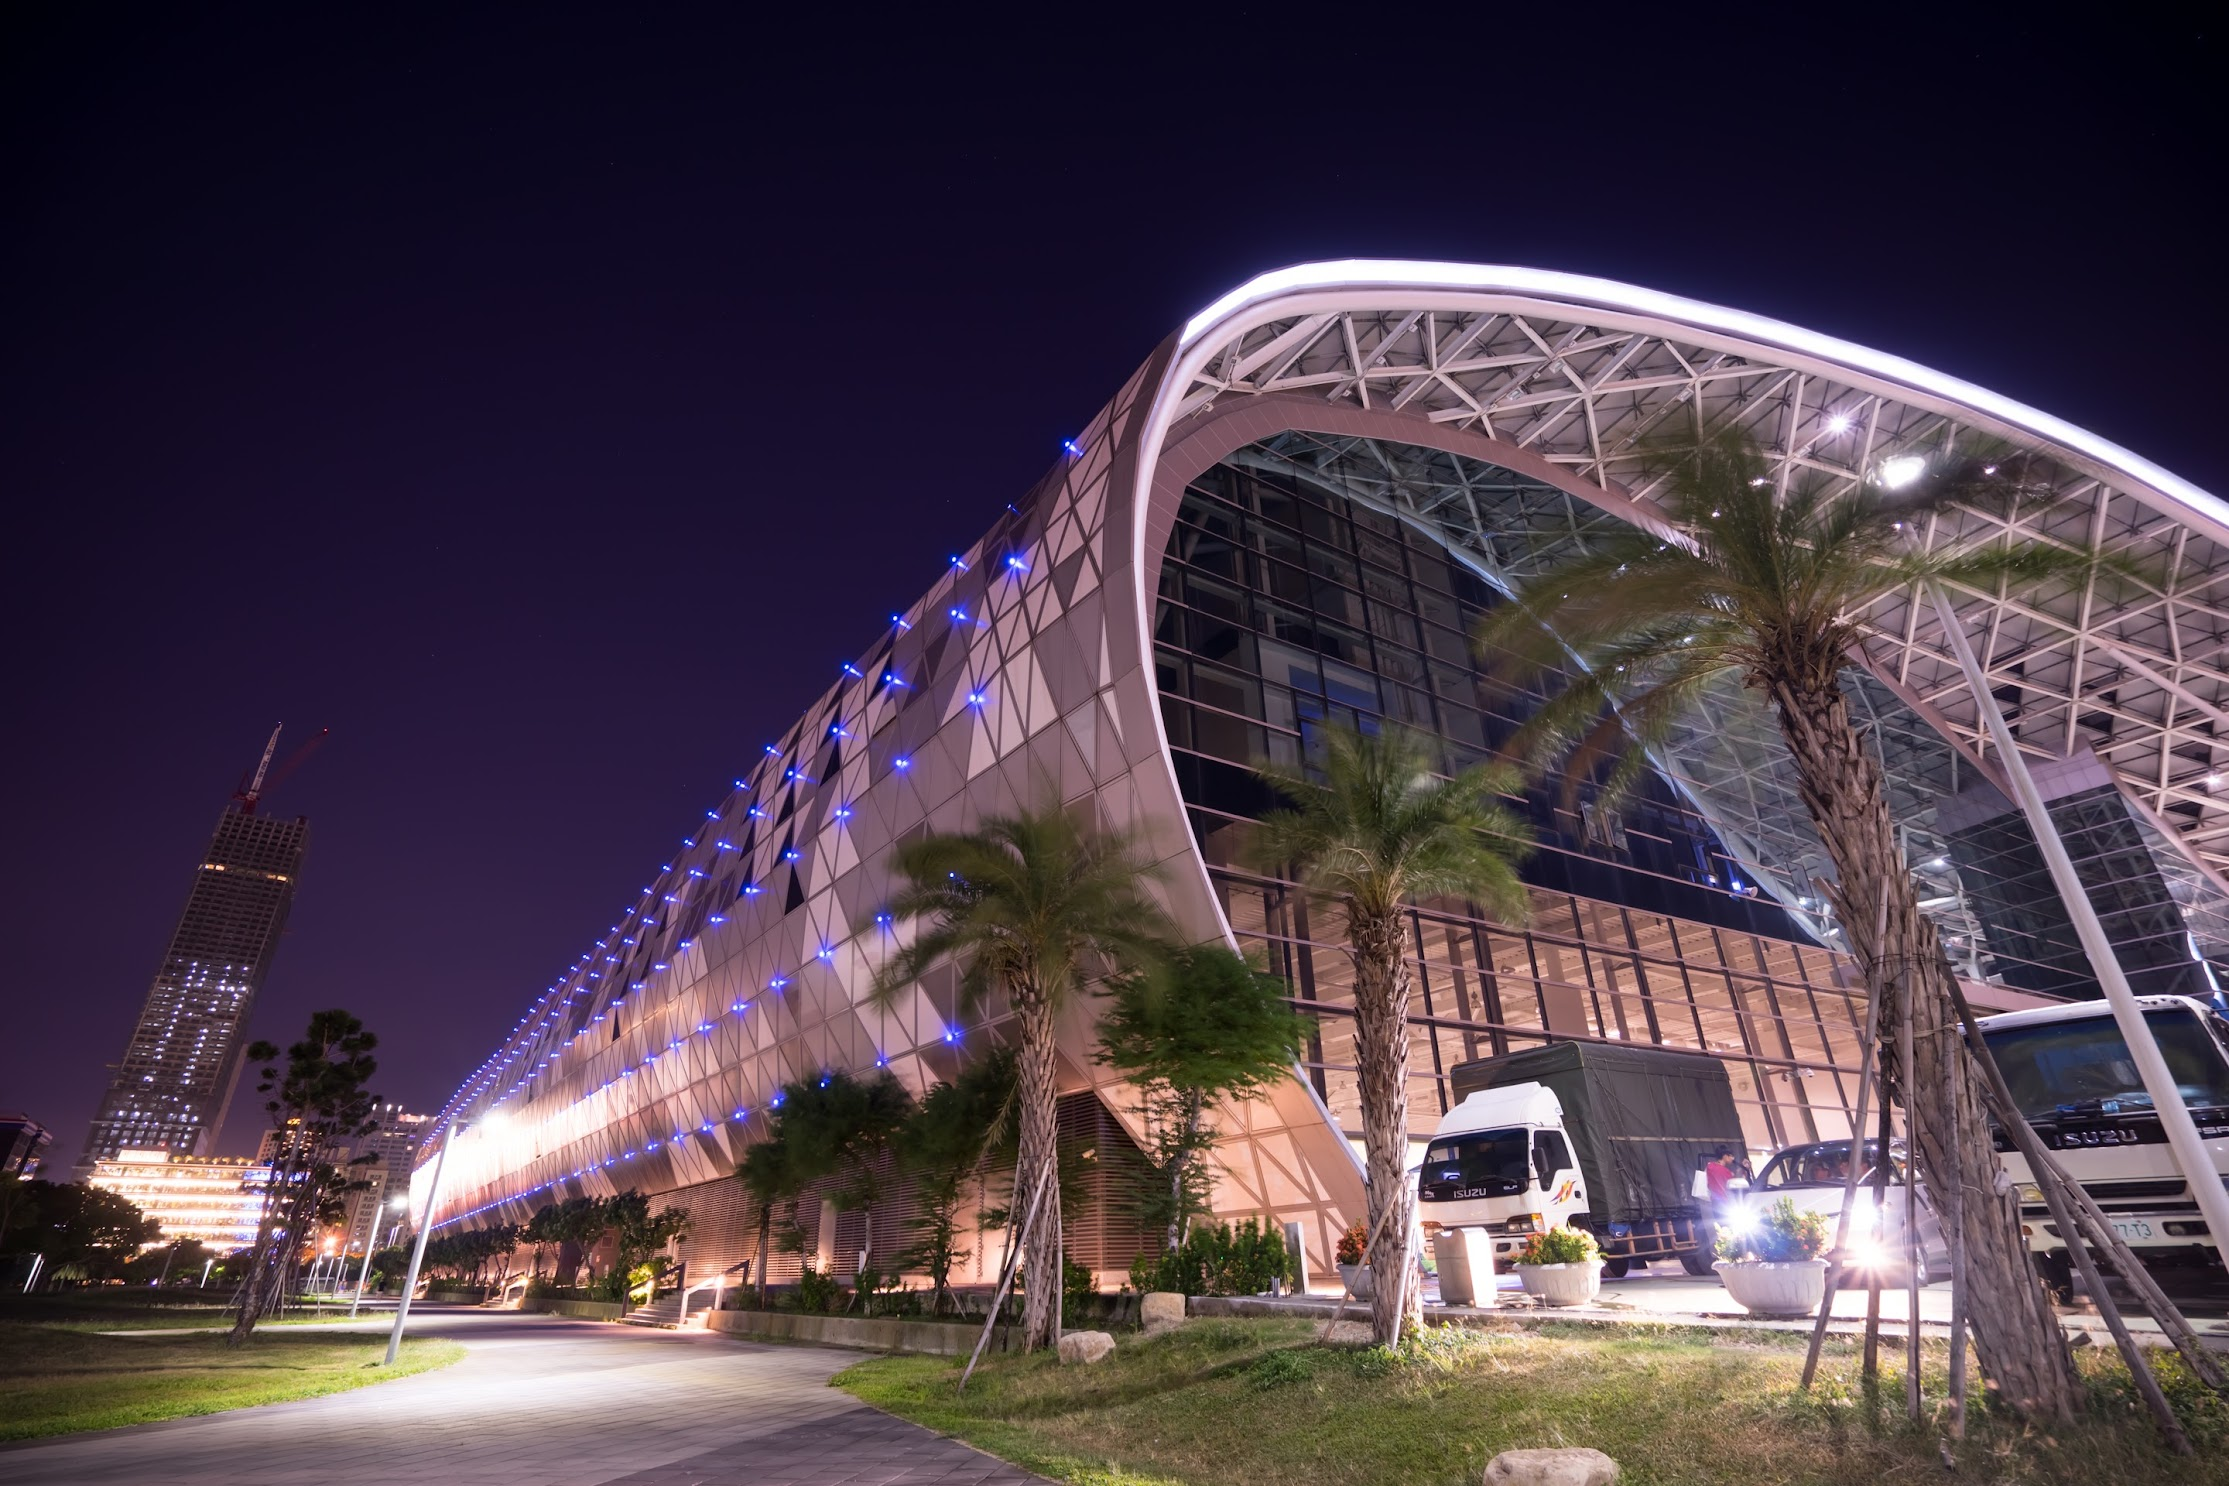 Taiwan Kaohsiung Exhibition Center night view1